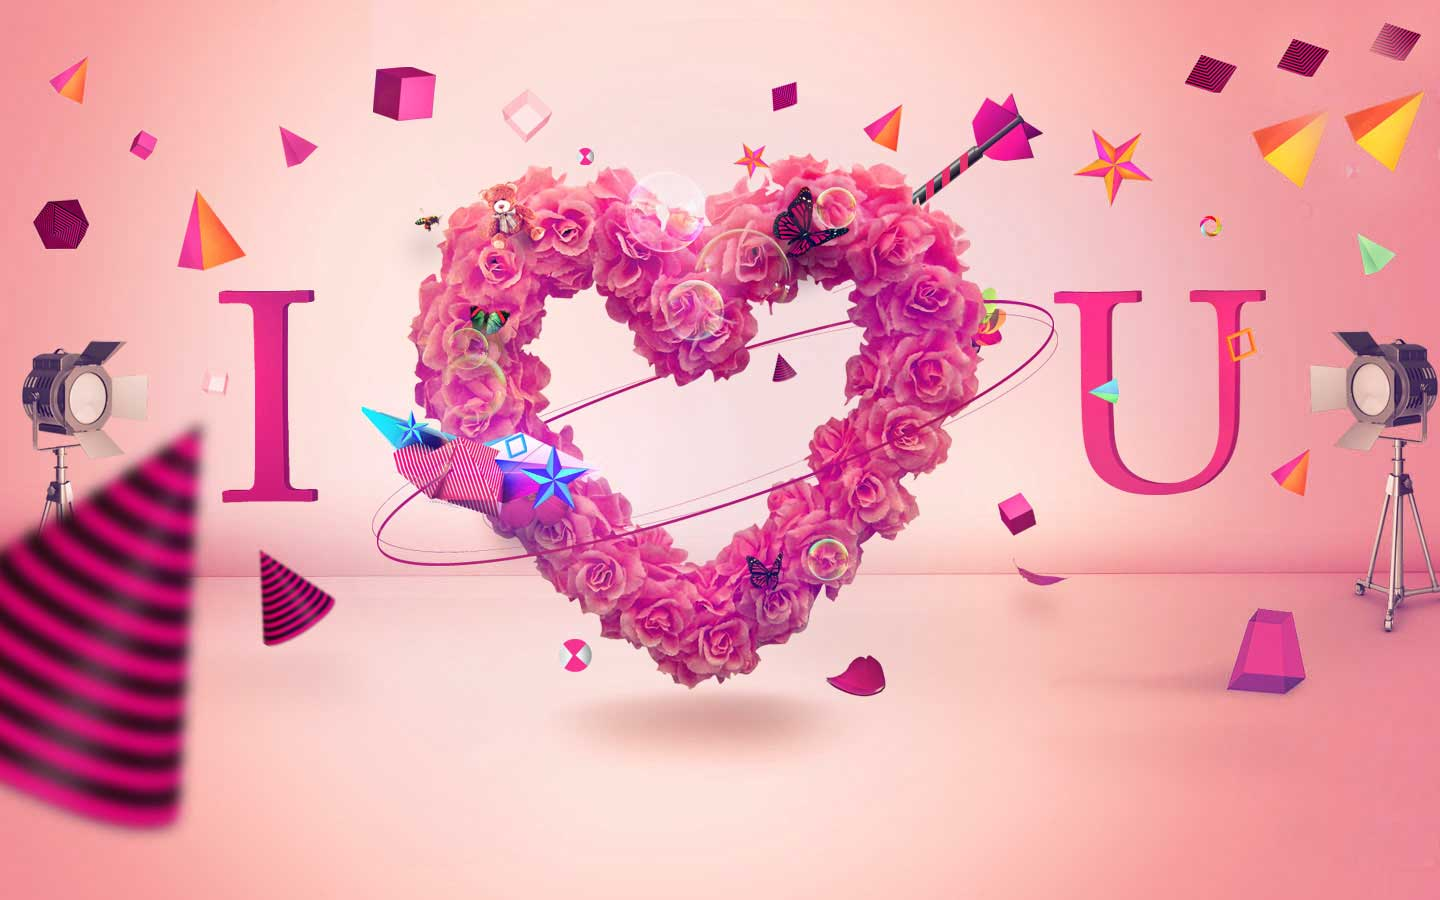 HD free i love you wallpapers